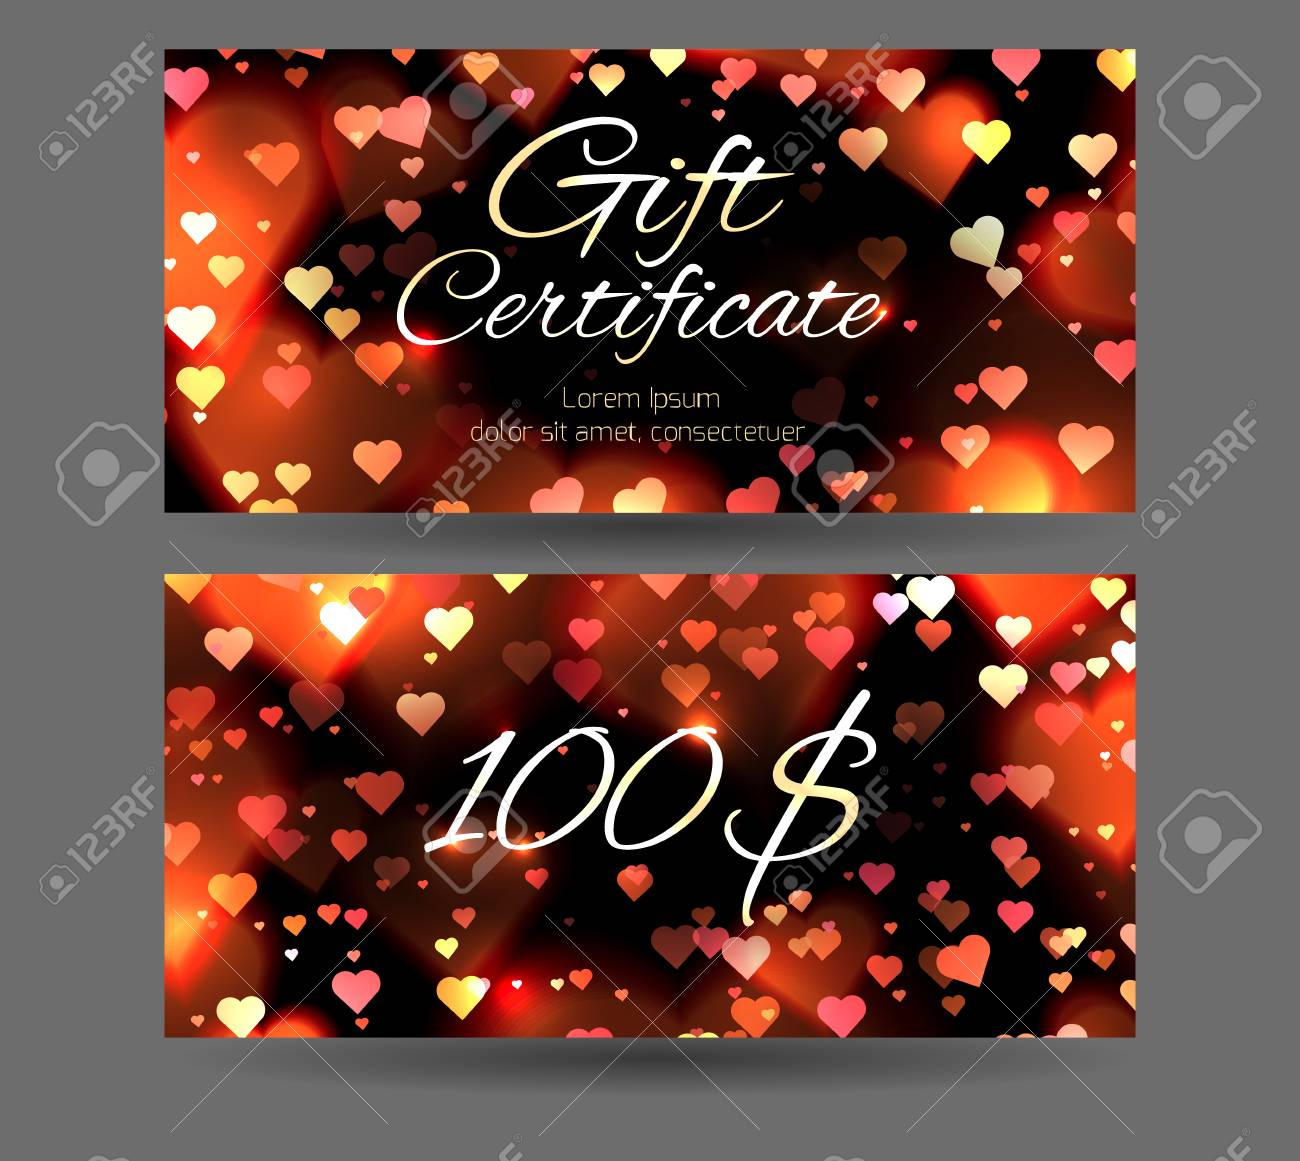 Gift Certificate With Sparks And Hearts On A Dark Background